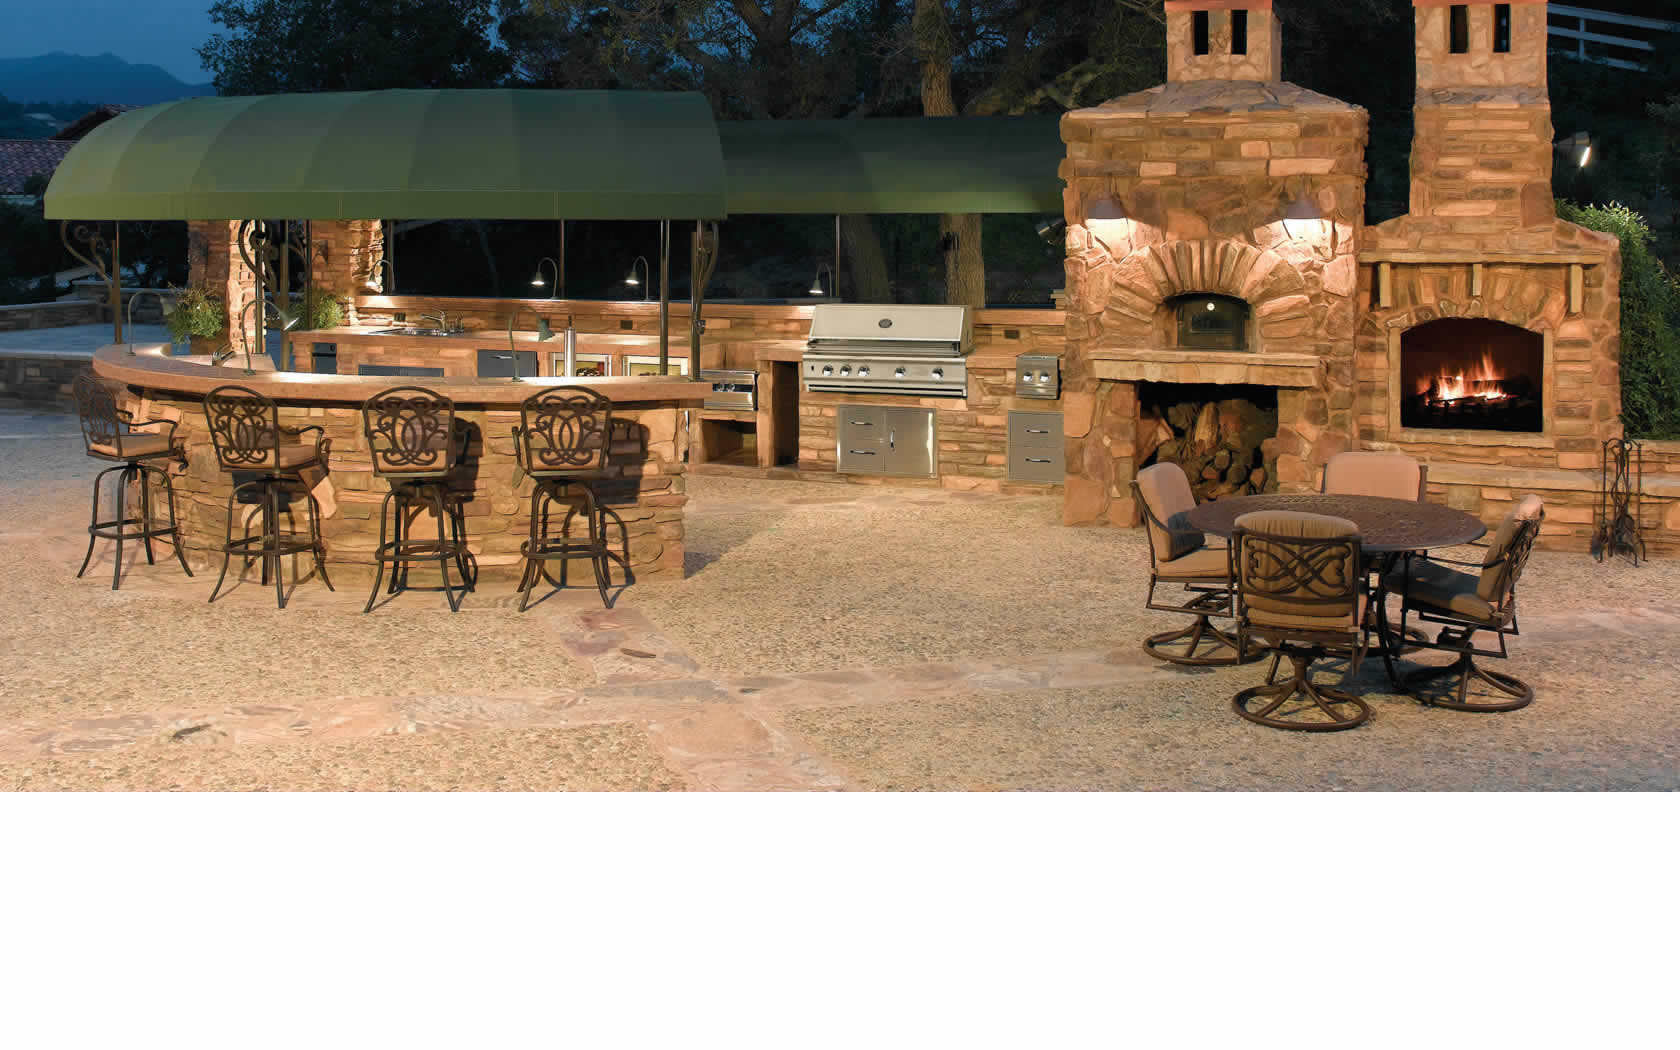 Las Vegas Outdoor Kitchens and Barbecues | Las Vegas Outdoor Kitchen ...